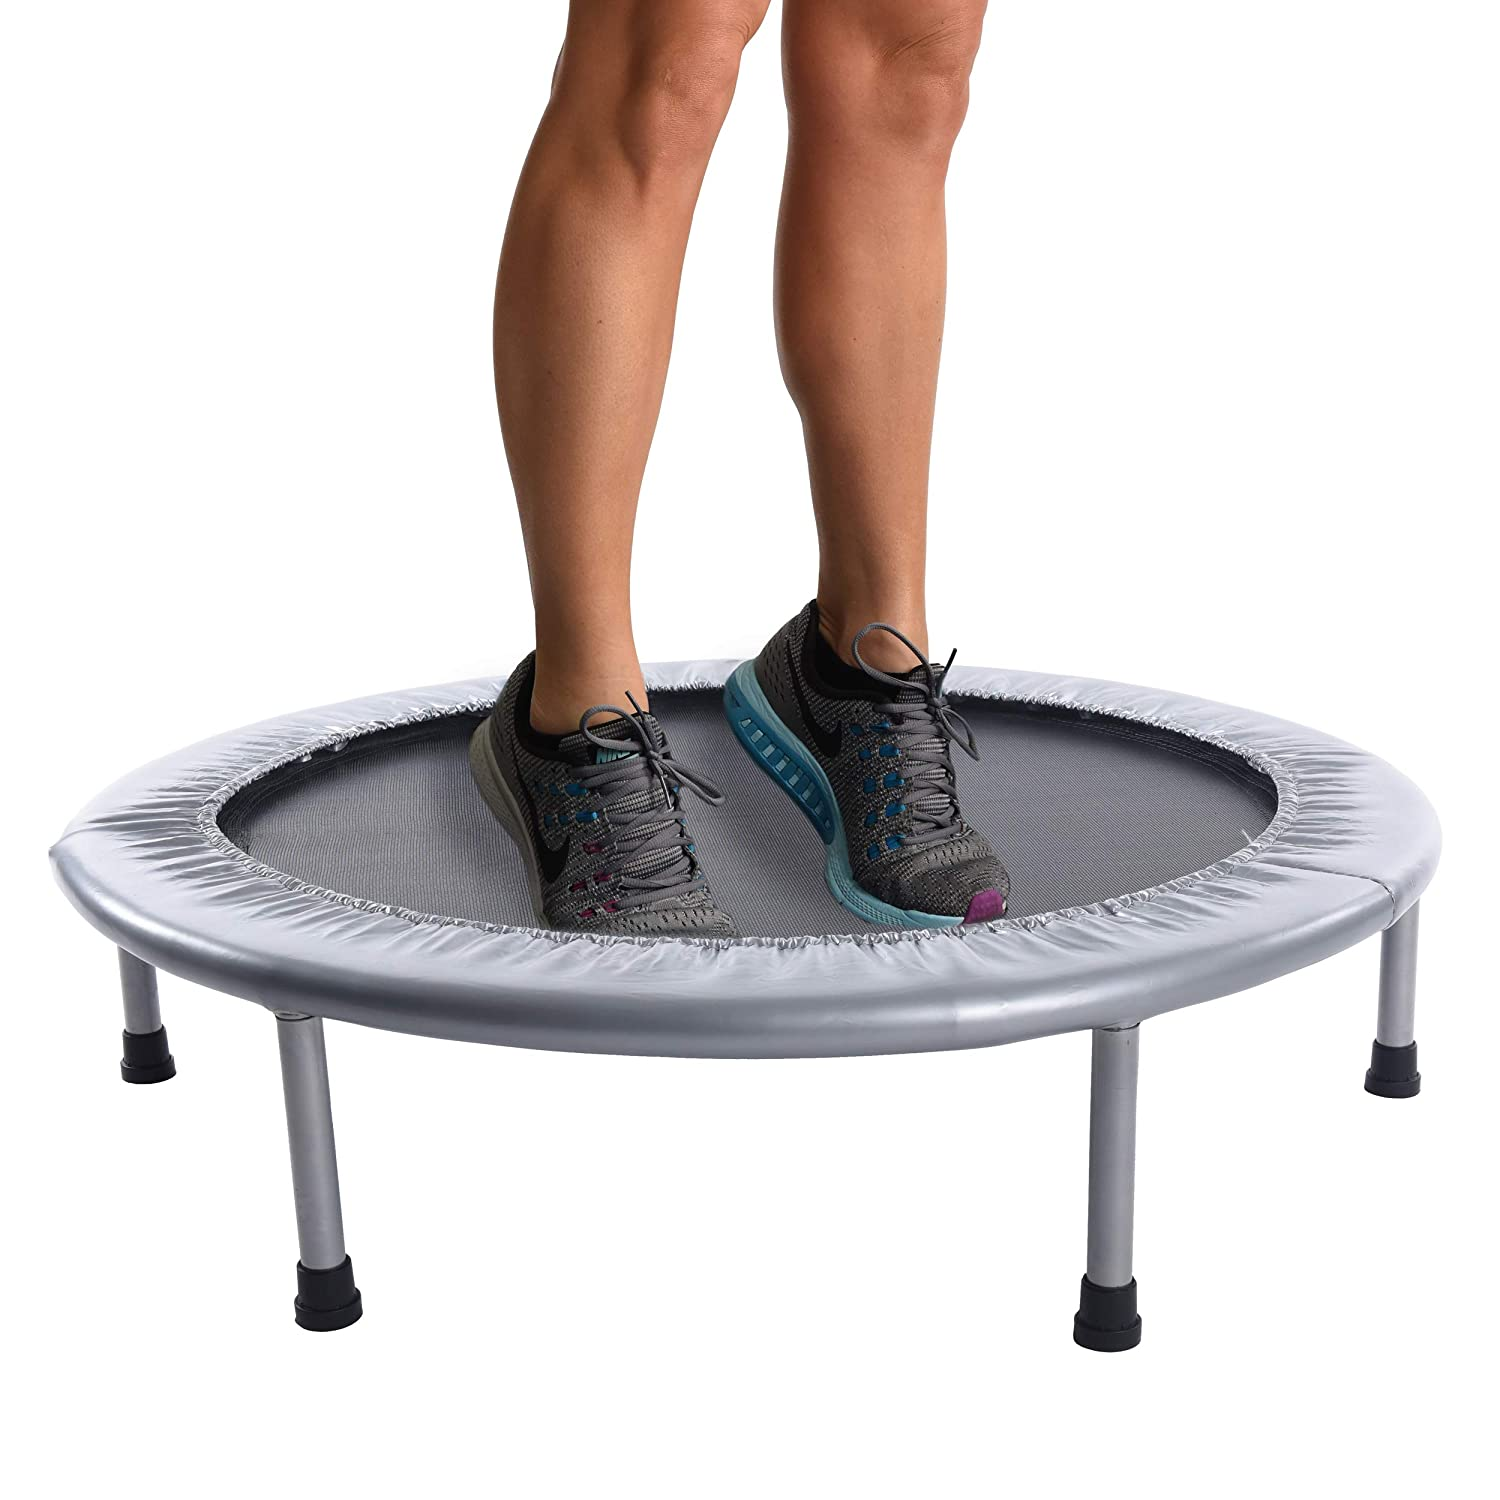 Softbounce And Hardbounce Mini Trampolines: Best Rebounder Reviews: Why They're Awesome 2019